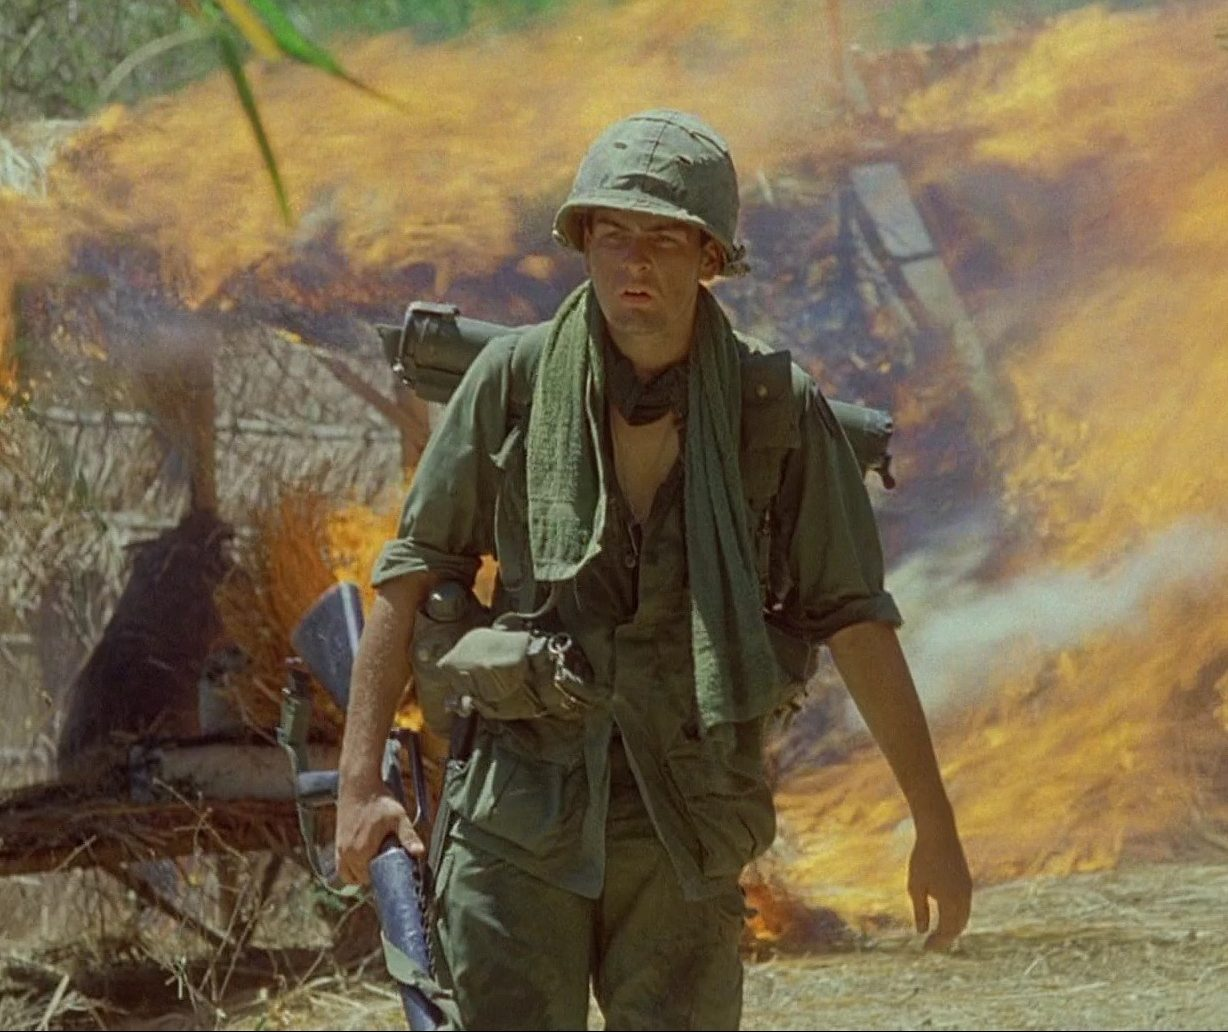 Platoon 1986 Wallpapers 9 e1606751336174 30 Things You Probably Didn't Know About Platoon